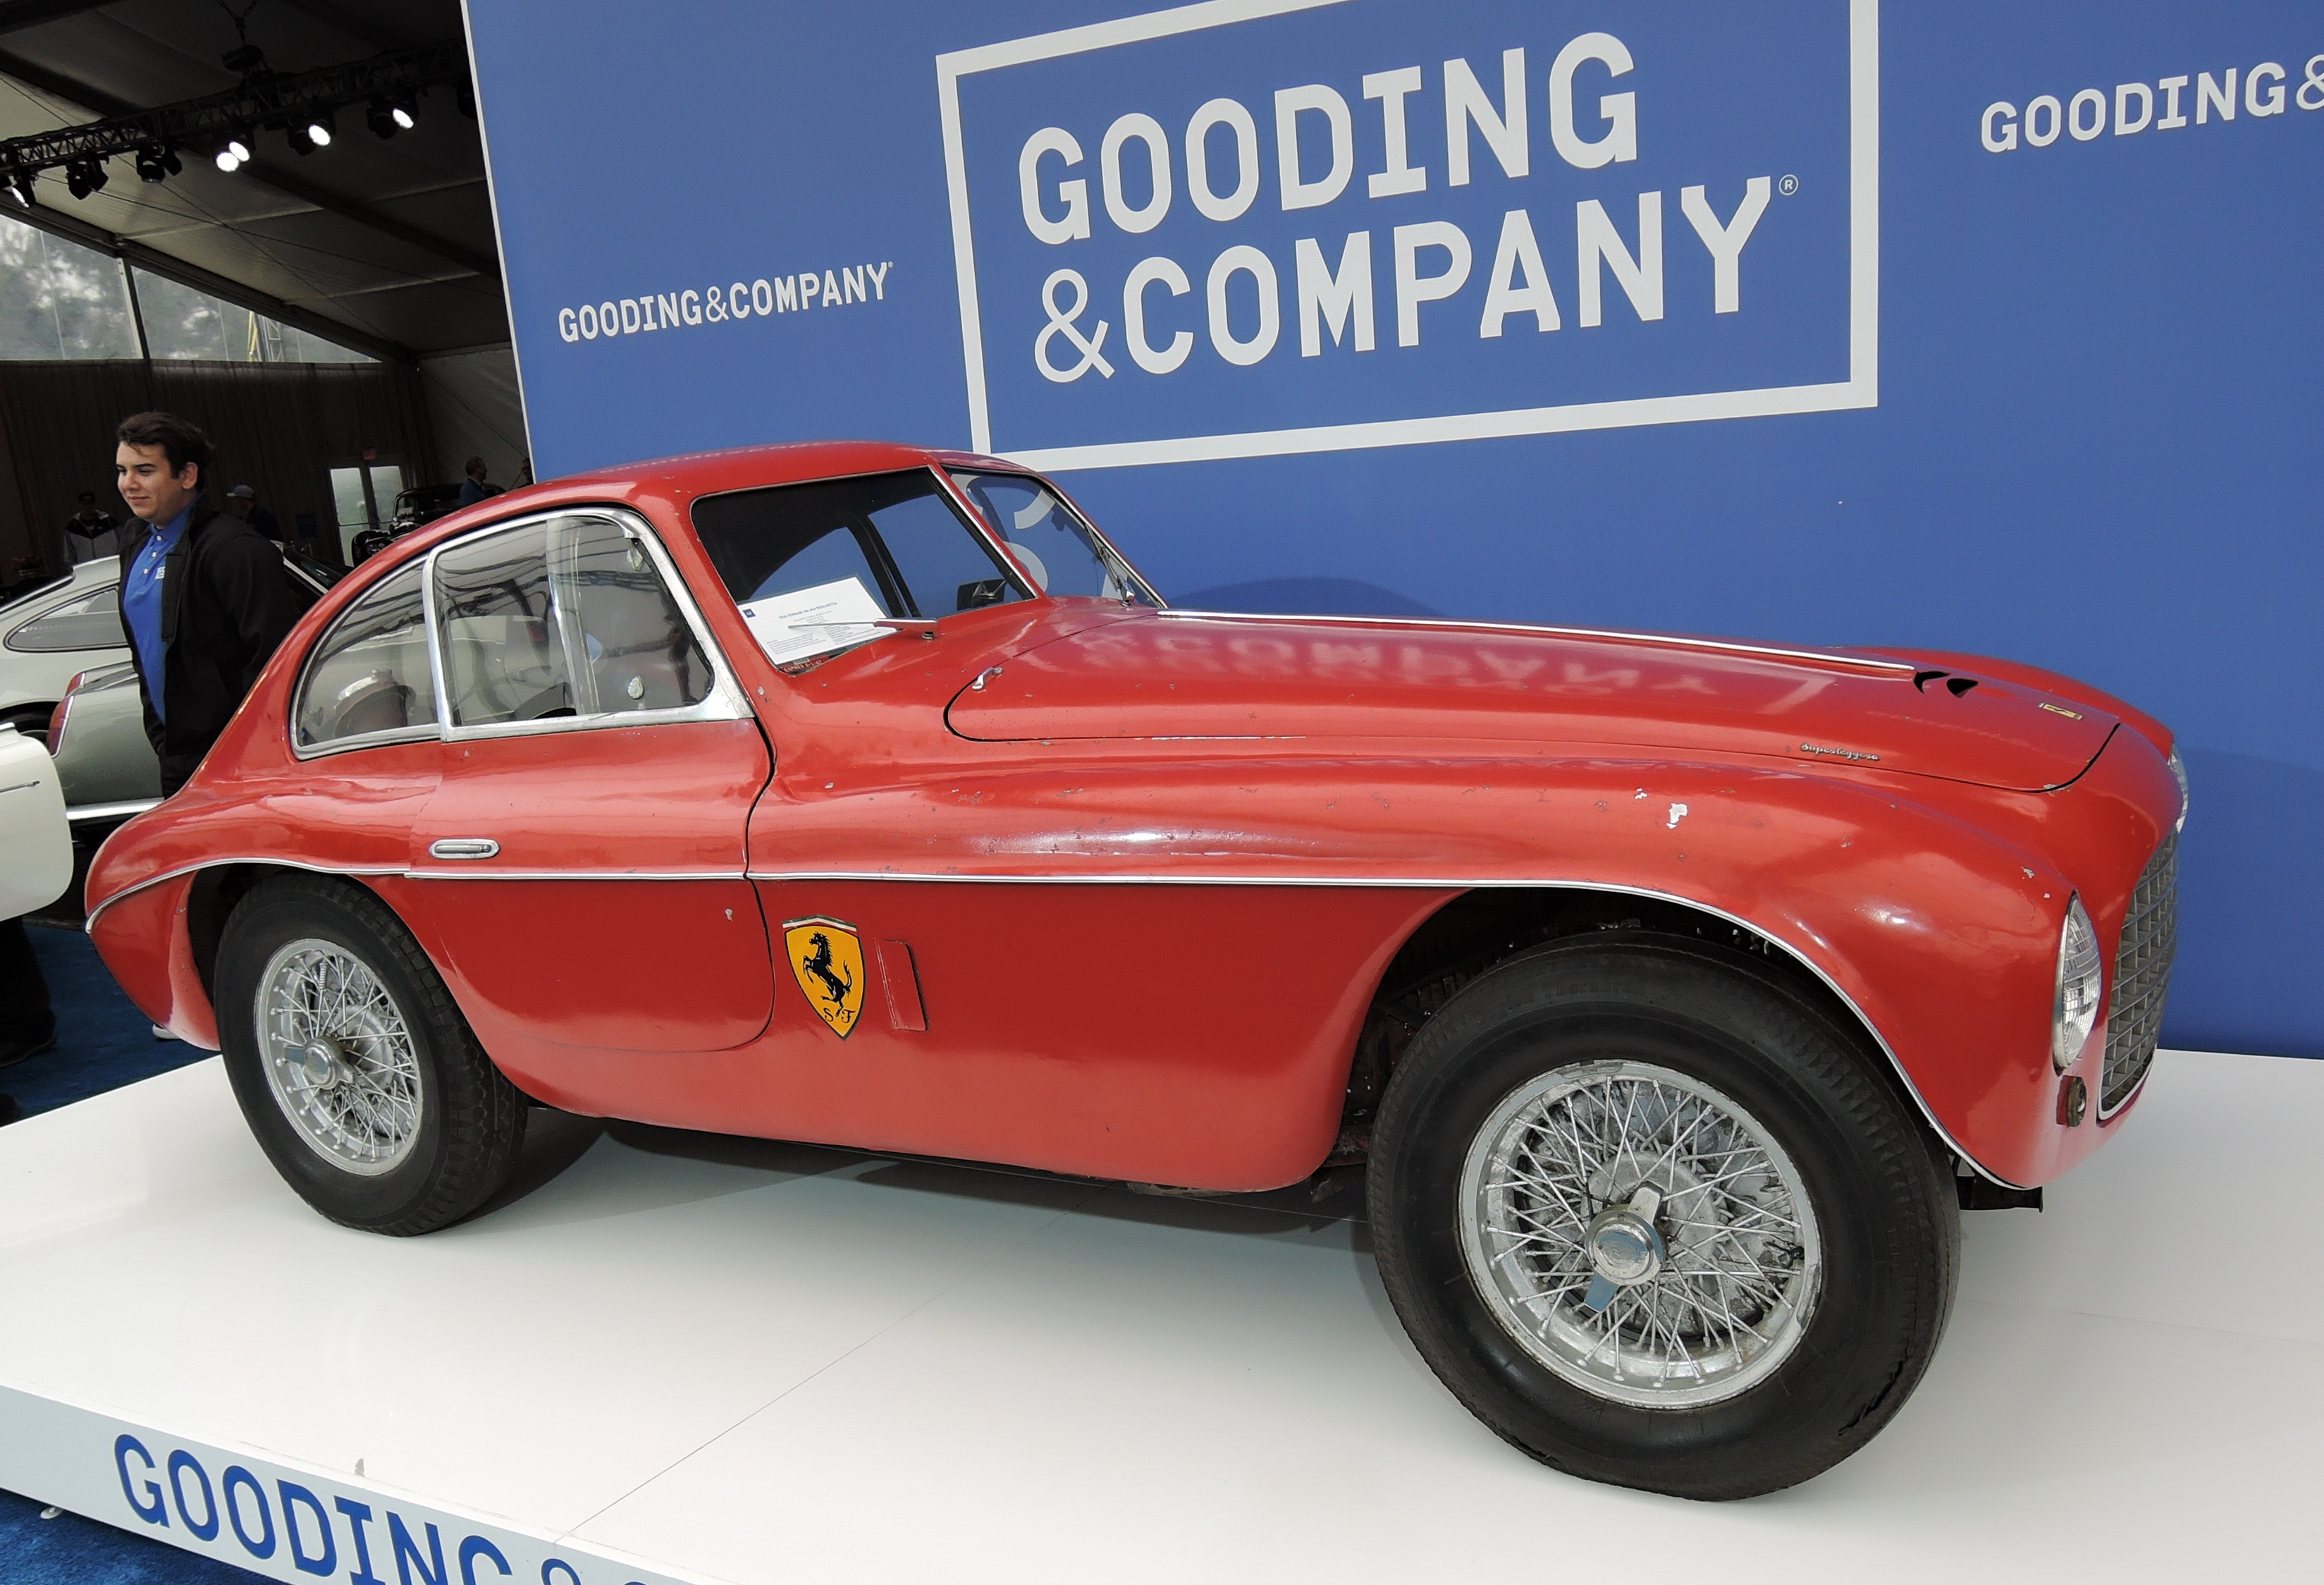 red 1950 Ferrari 166 MM Berlinetta - monterey auctions Good & Co